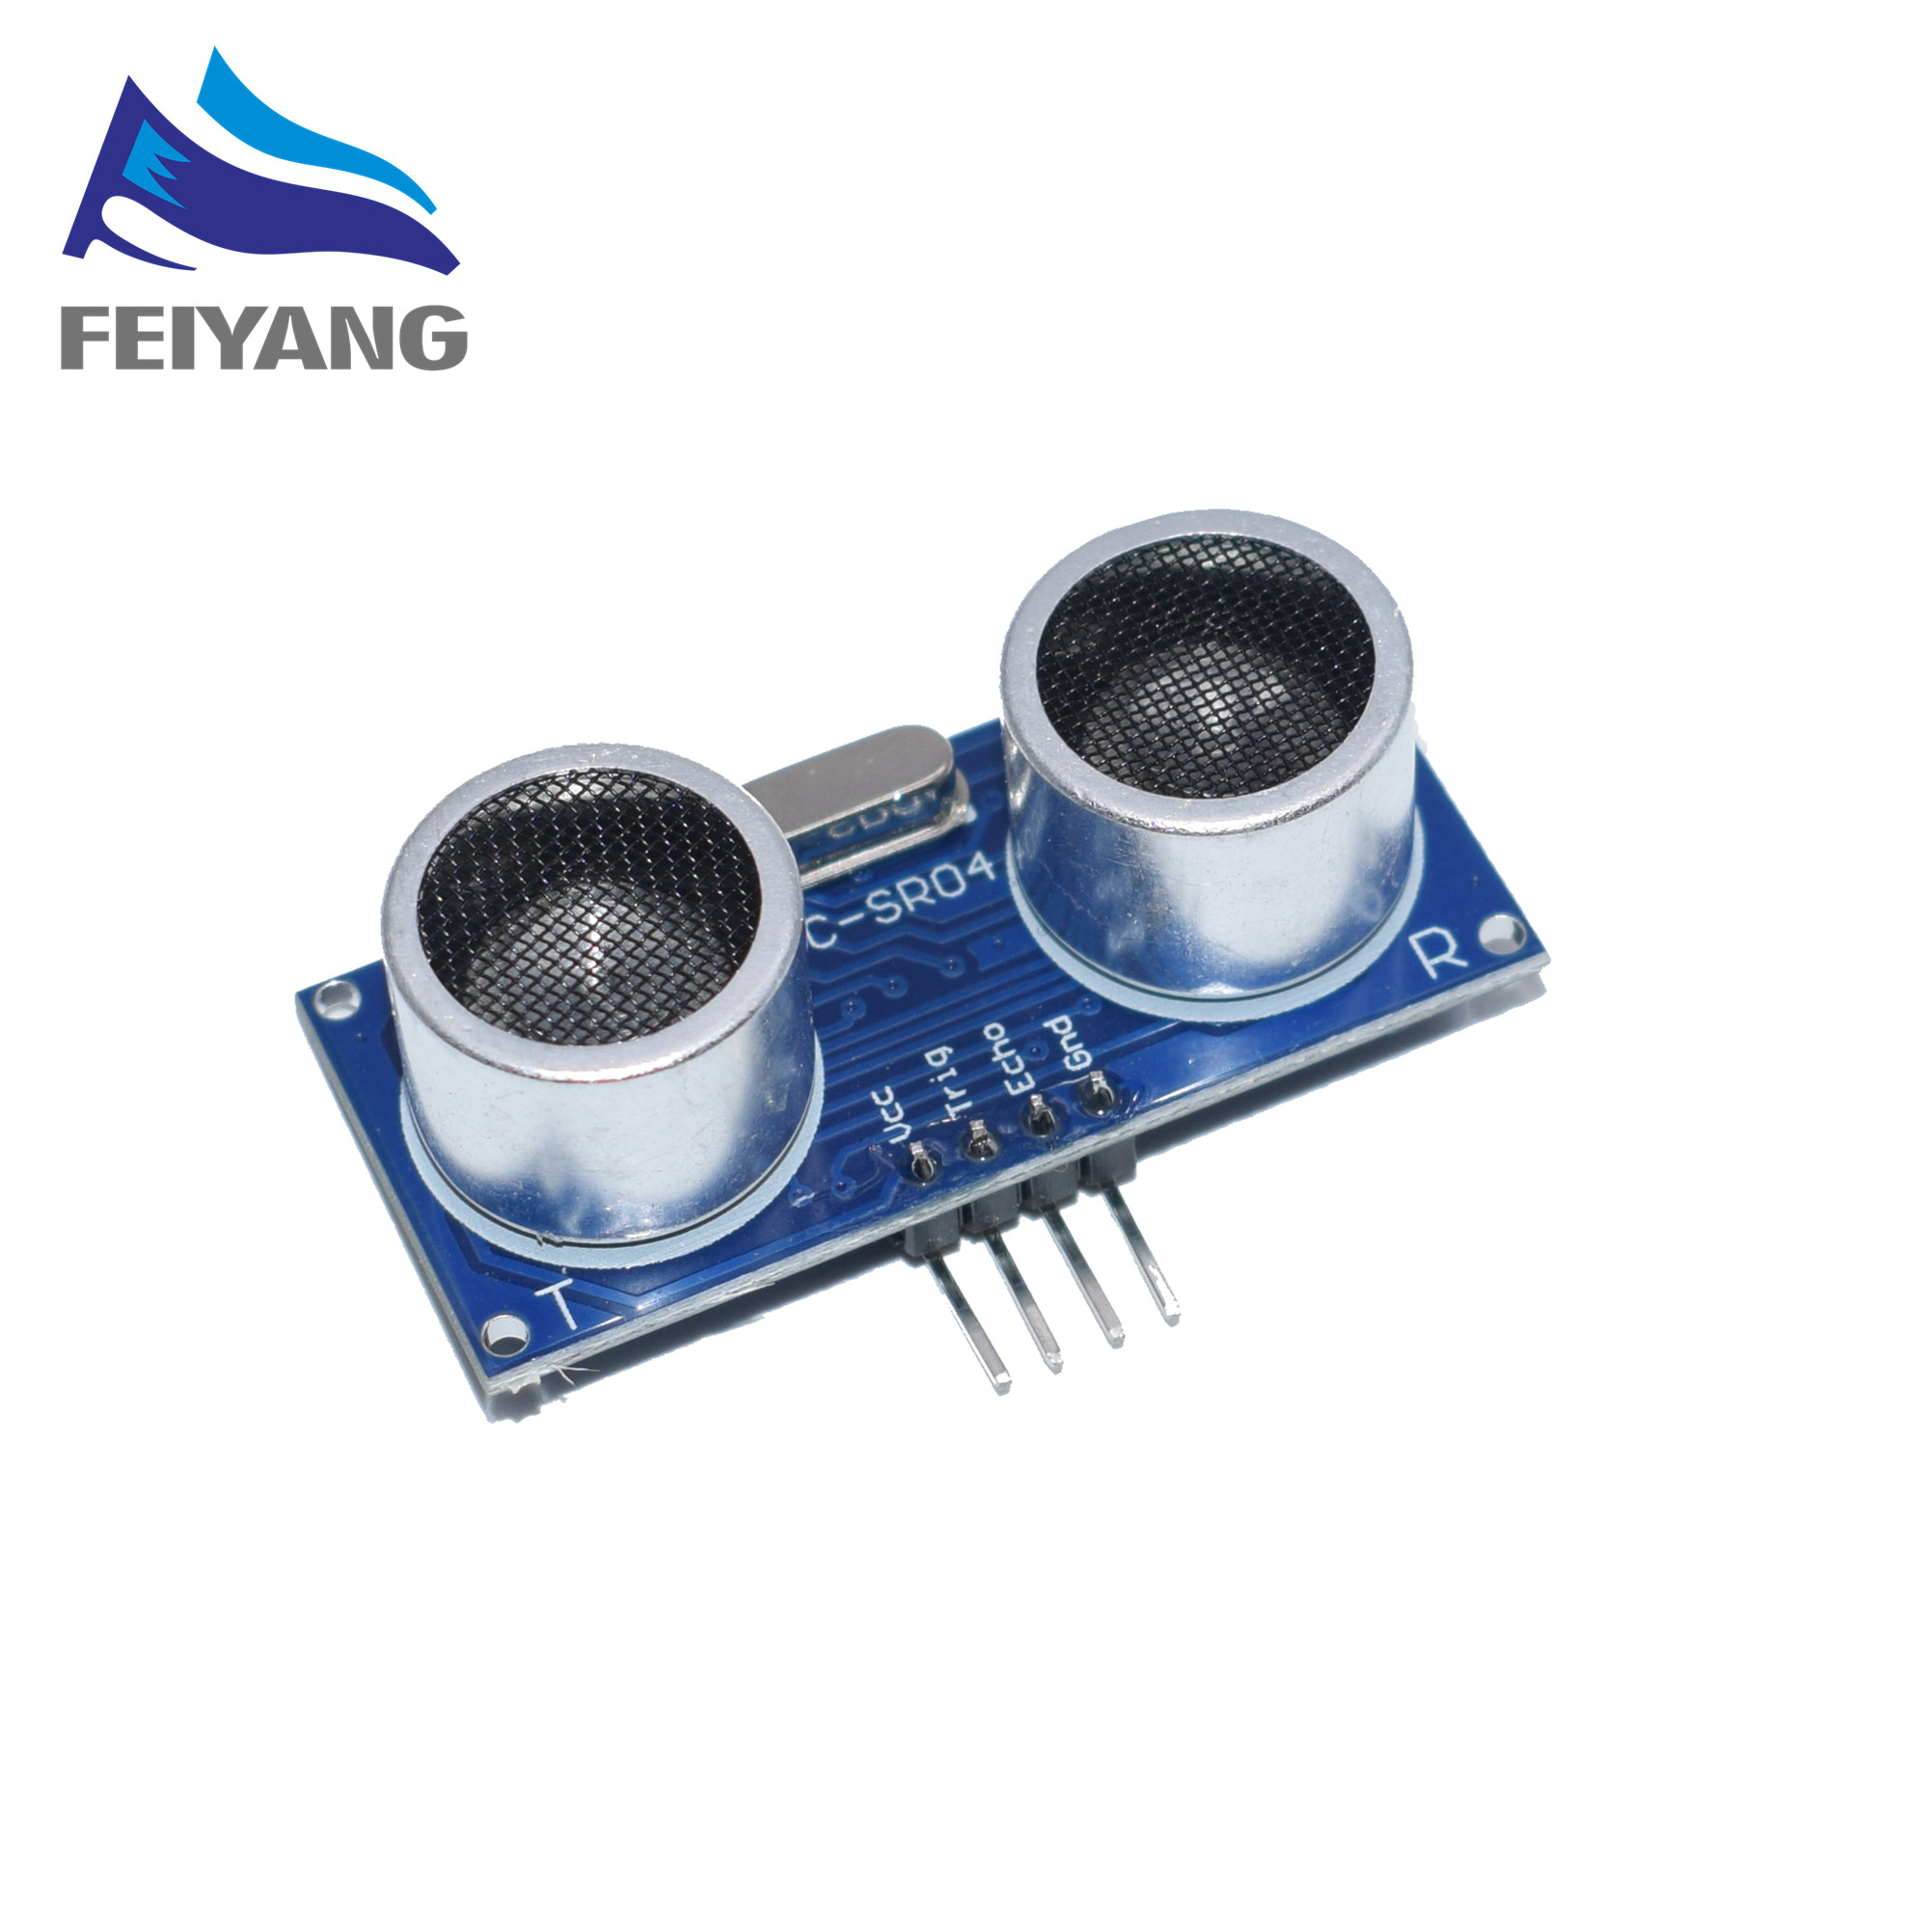 100pcs Ultrasonic Module <font><b>HC</b></font>-<font><b>SR04</b></font> Distance Measuring Transducer <font><b>Sensor</b></font> Samples Best prices image